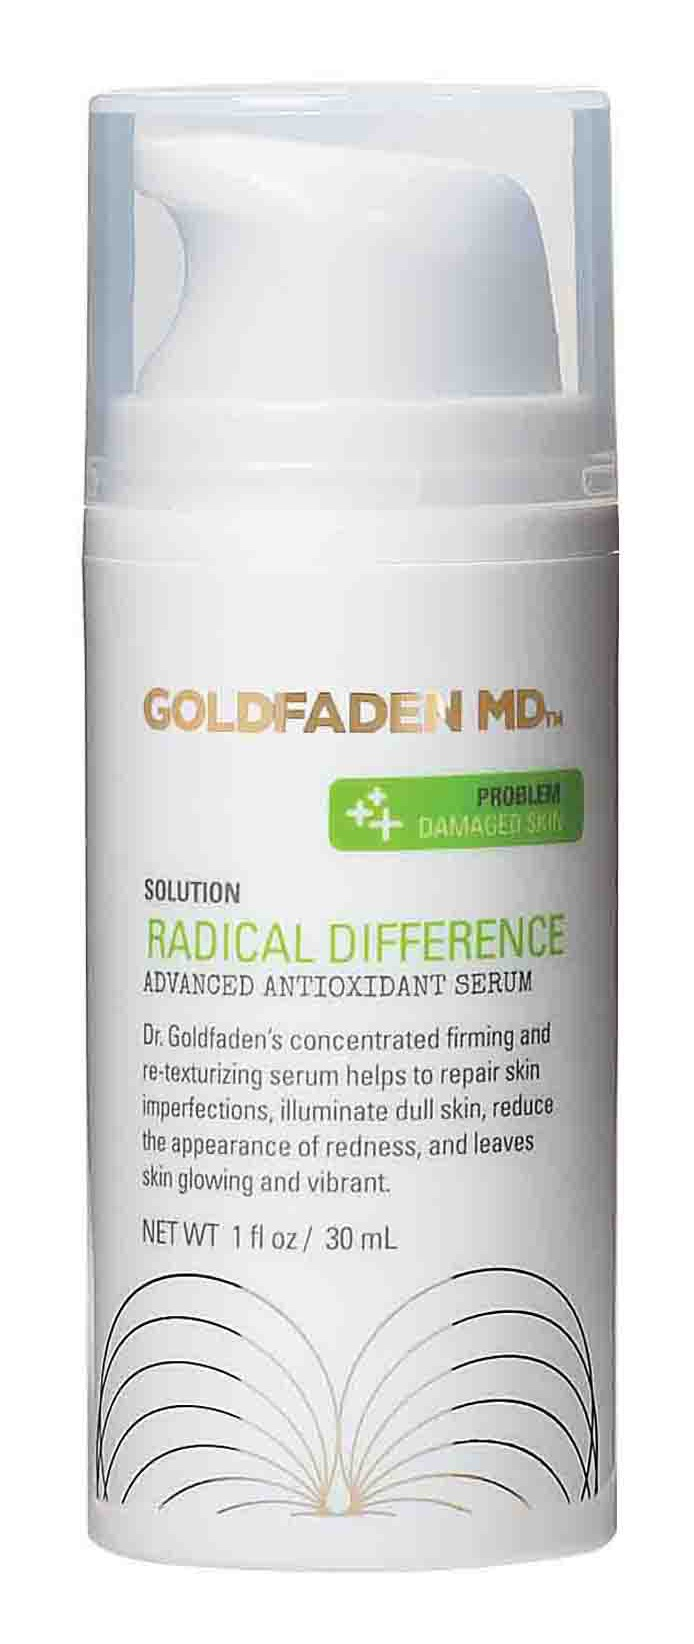 Goldfaden MD Radical Difference